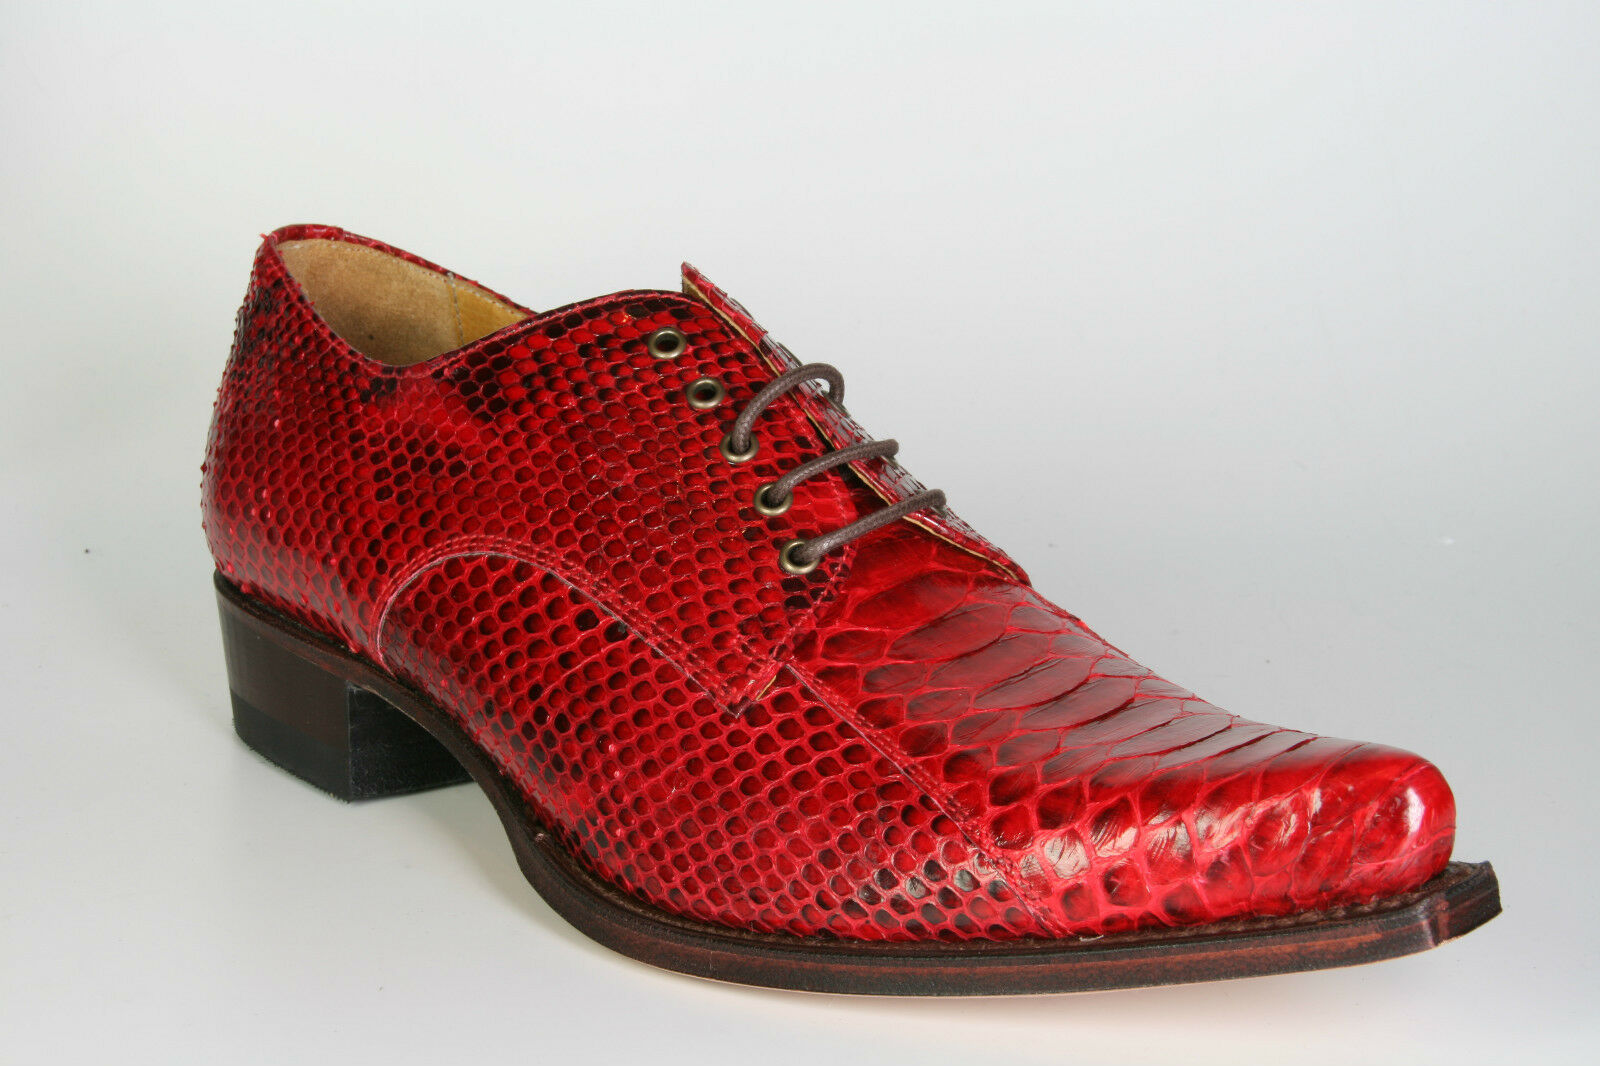 530 sendra Chaussure Lacée python Barr. rouge rouge